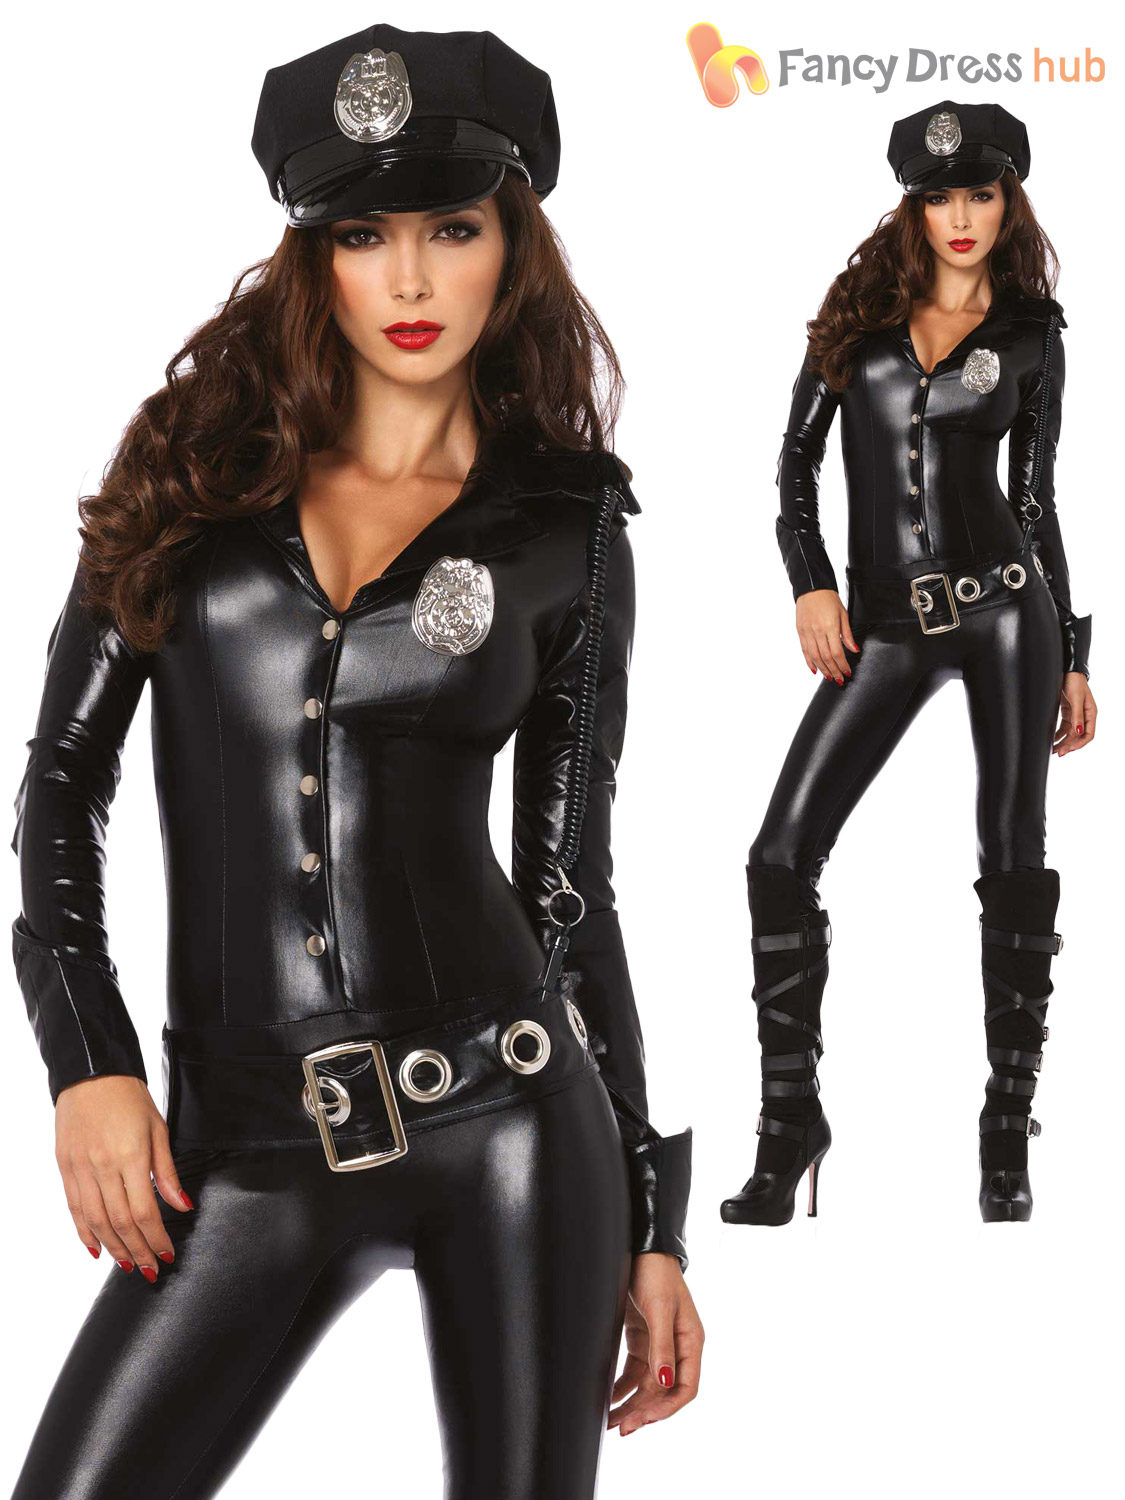 Sexy police woman uniform